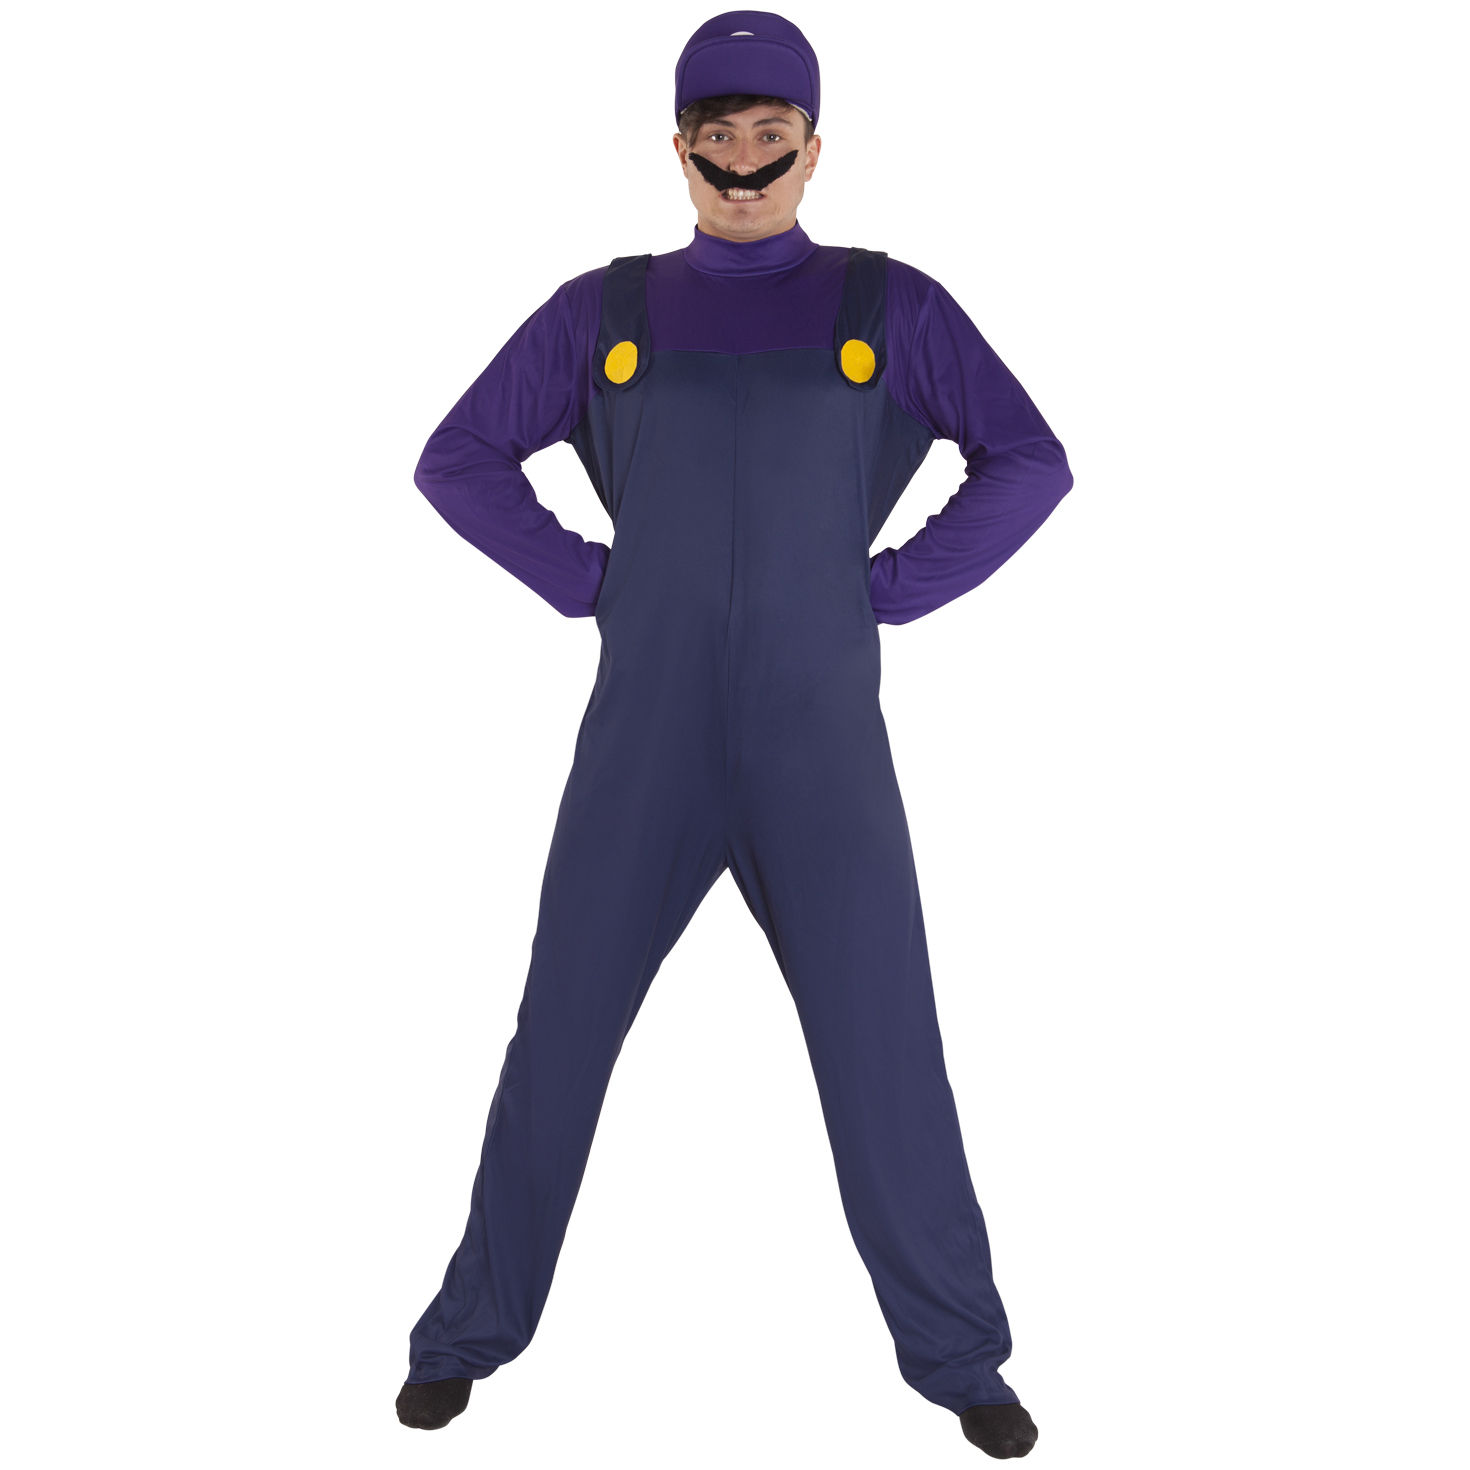 Details about Mens Super Mario Bros WALUIGI Fancy Dress Costume Adult  Purple Plumber Outfit b8ae2a809